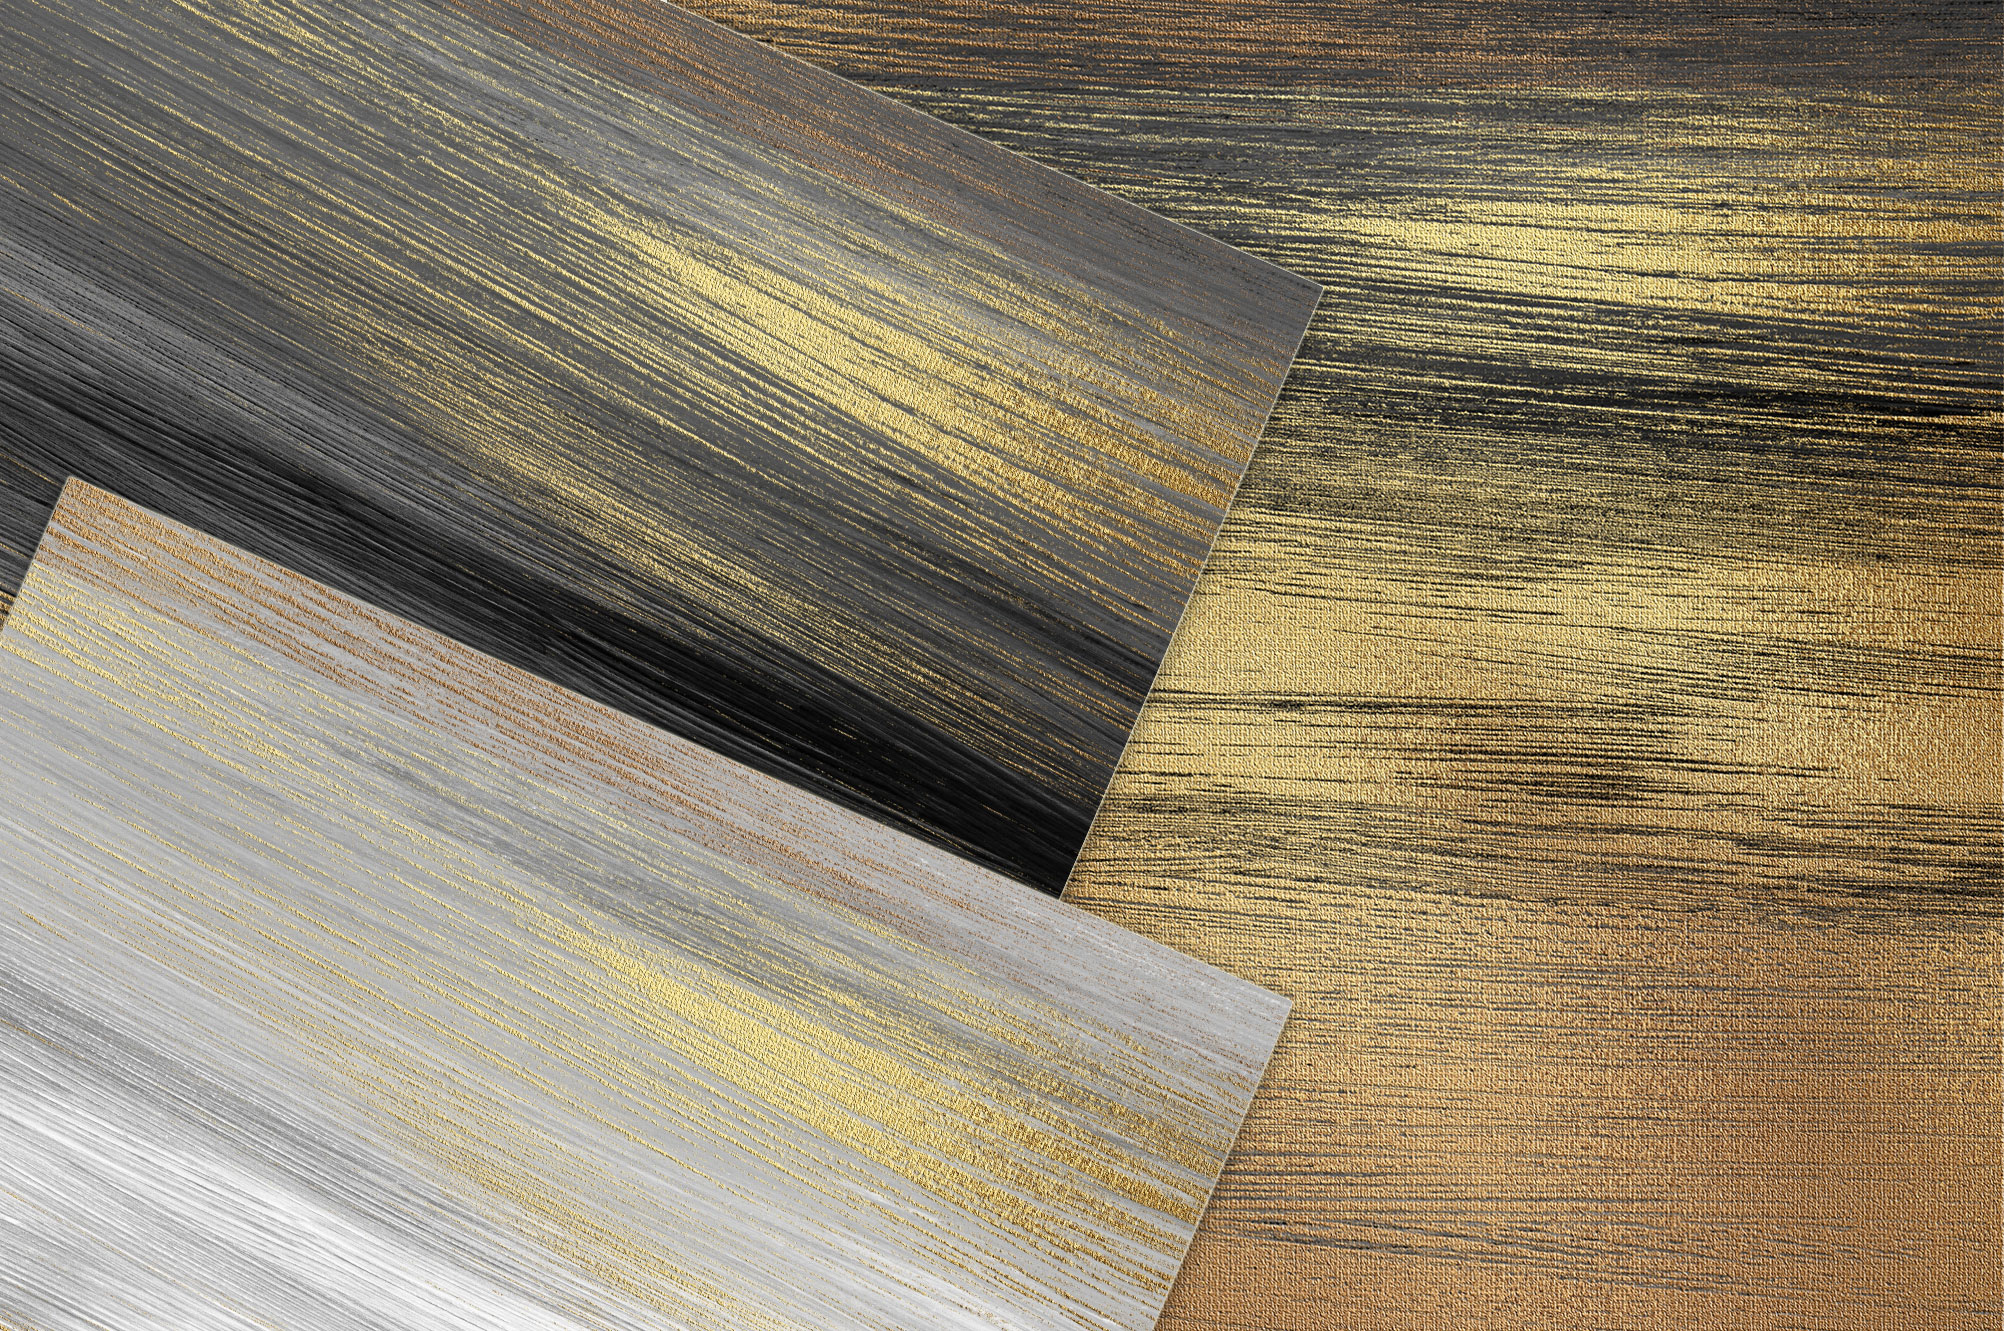 Gold Oil Paint Backgrounds example image 10